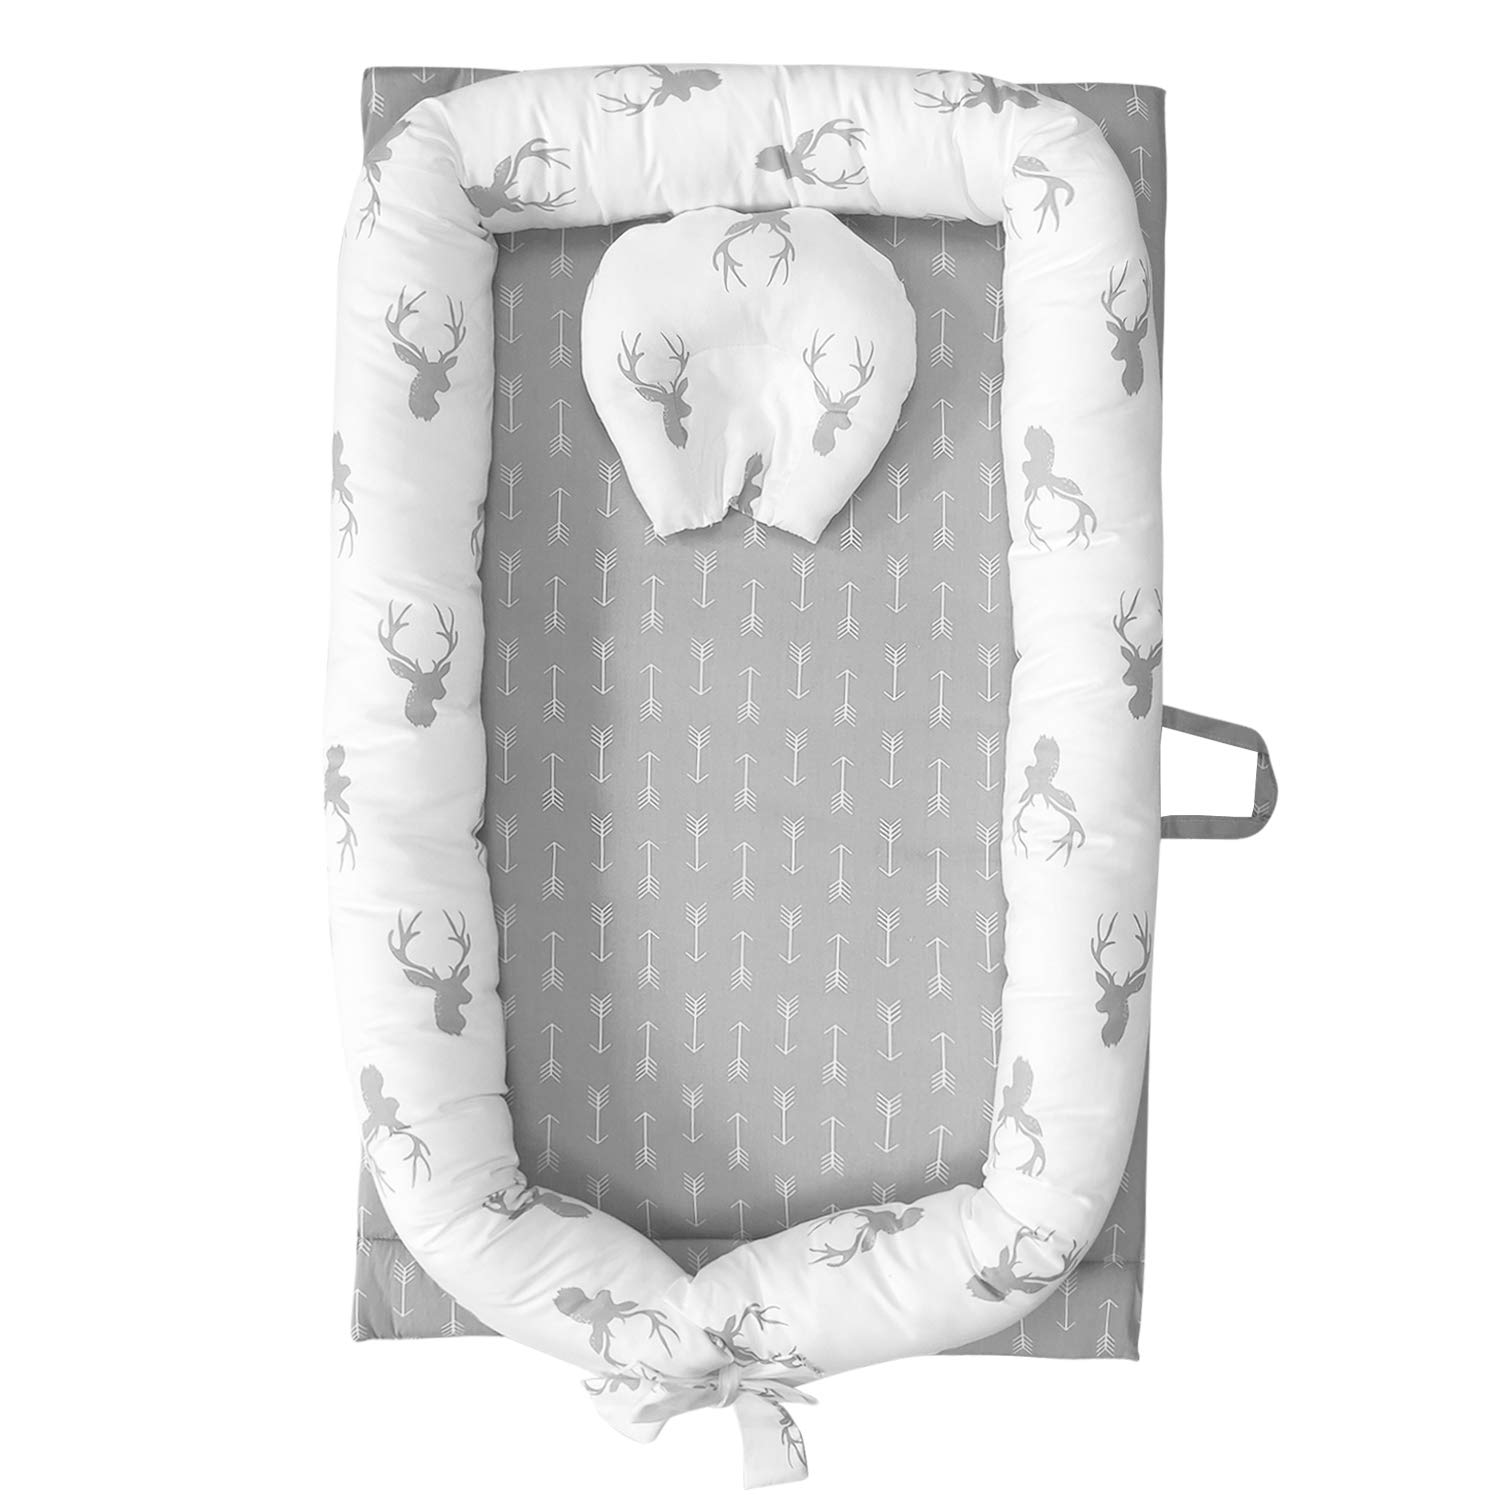 Abreeze Baby Bassinet for Bed -Christmas Elk Baby Lounger - Breathable & Hypoallergenic Co-Sleeping Baby Bed - 100% Cotton Portable Crib for Bedroom/Travel 0-24 Months by Abreeze